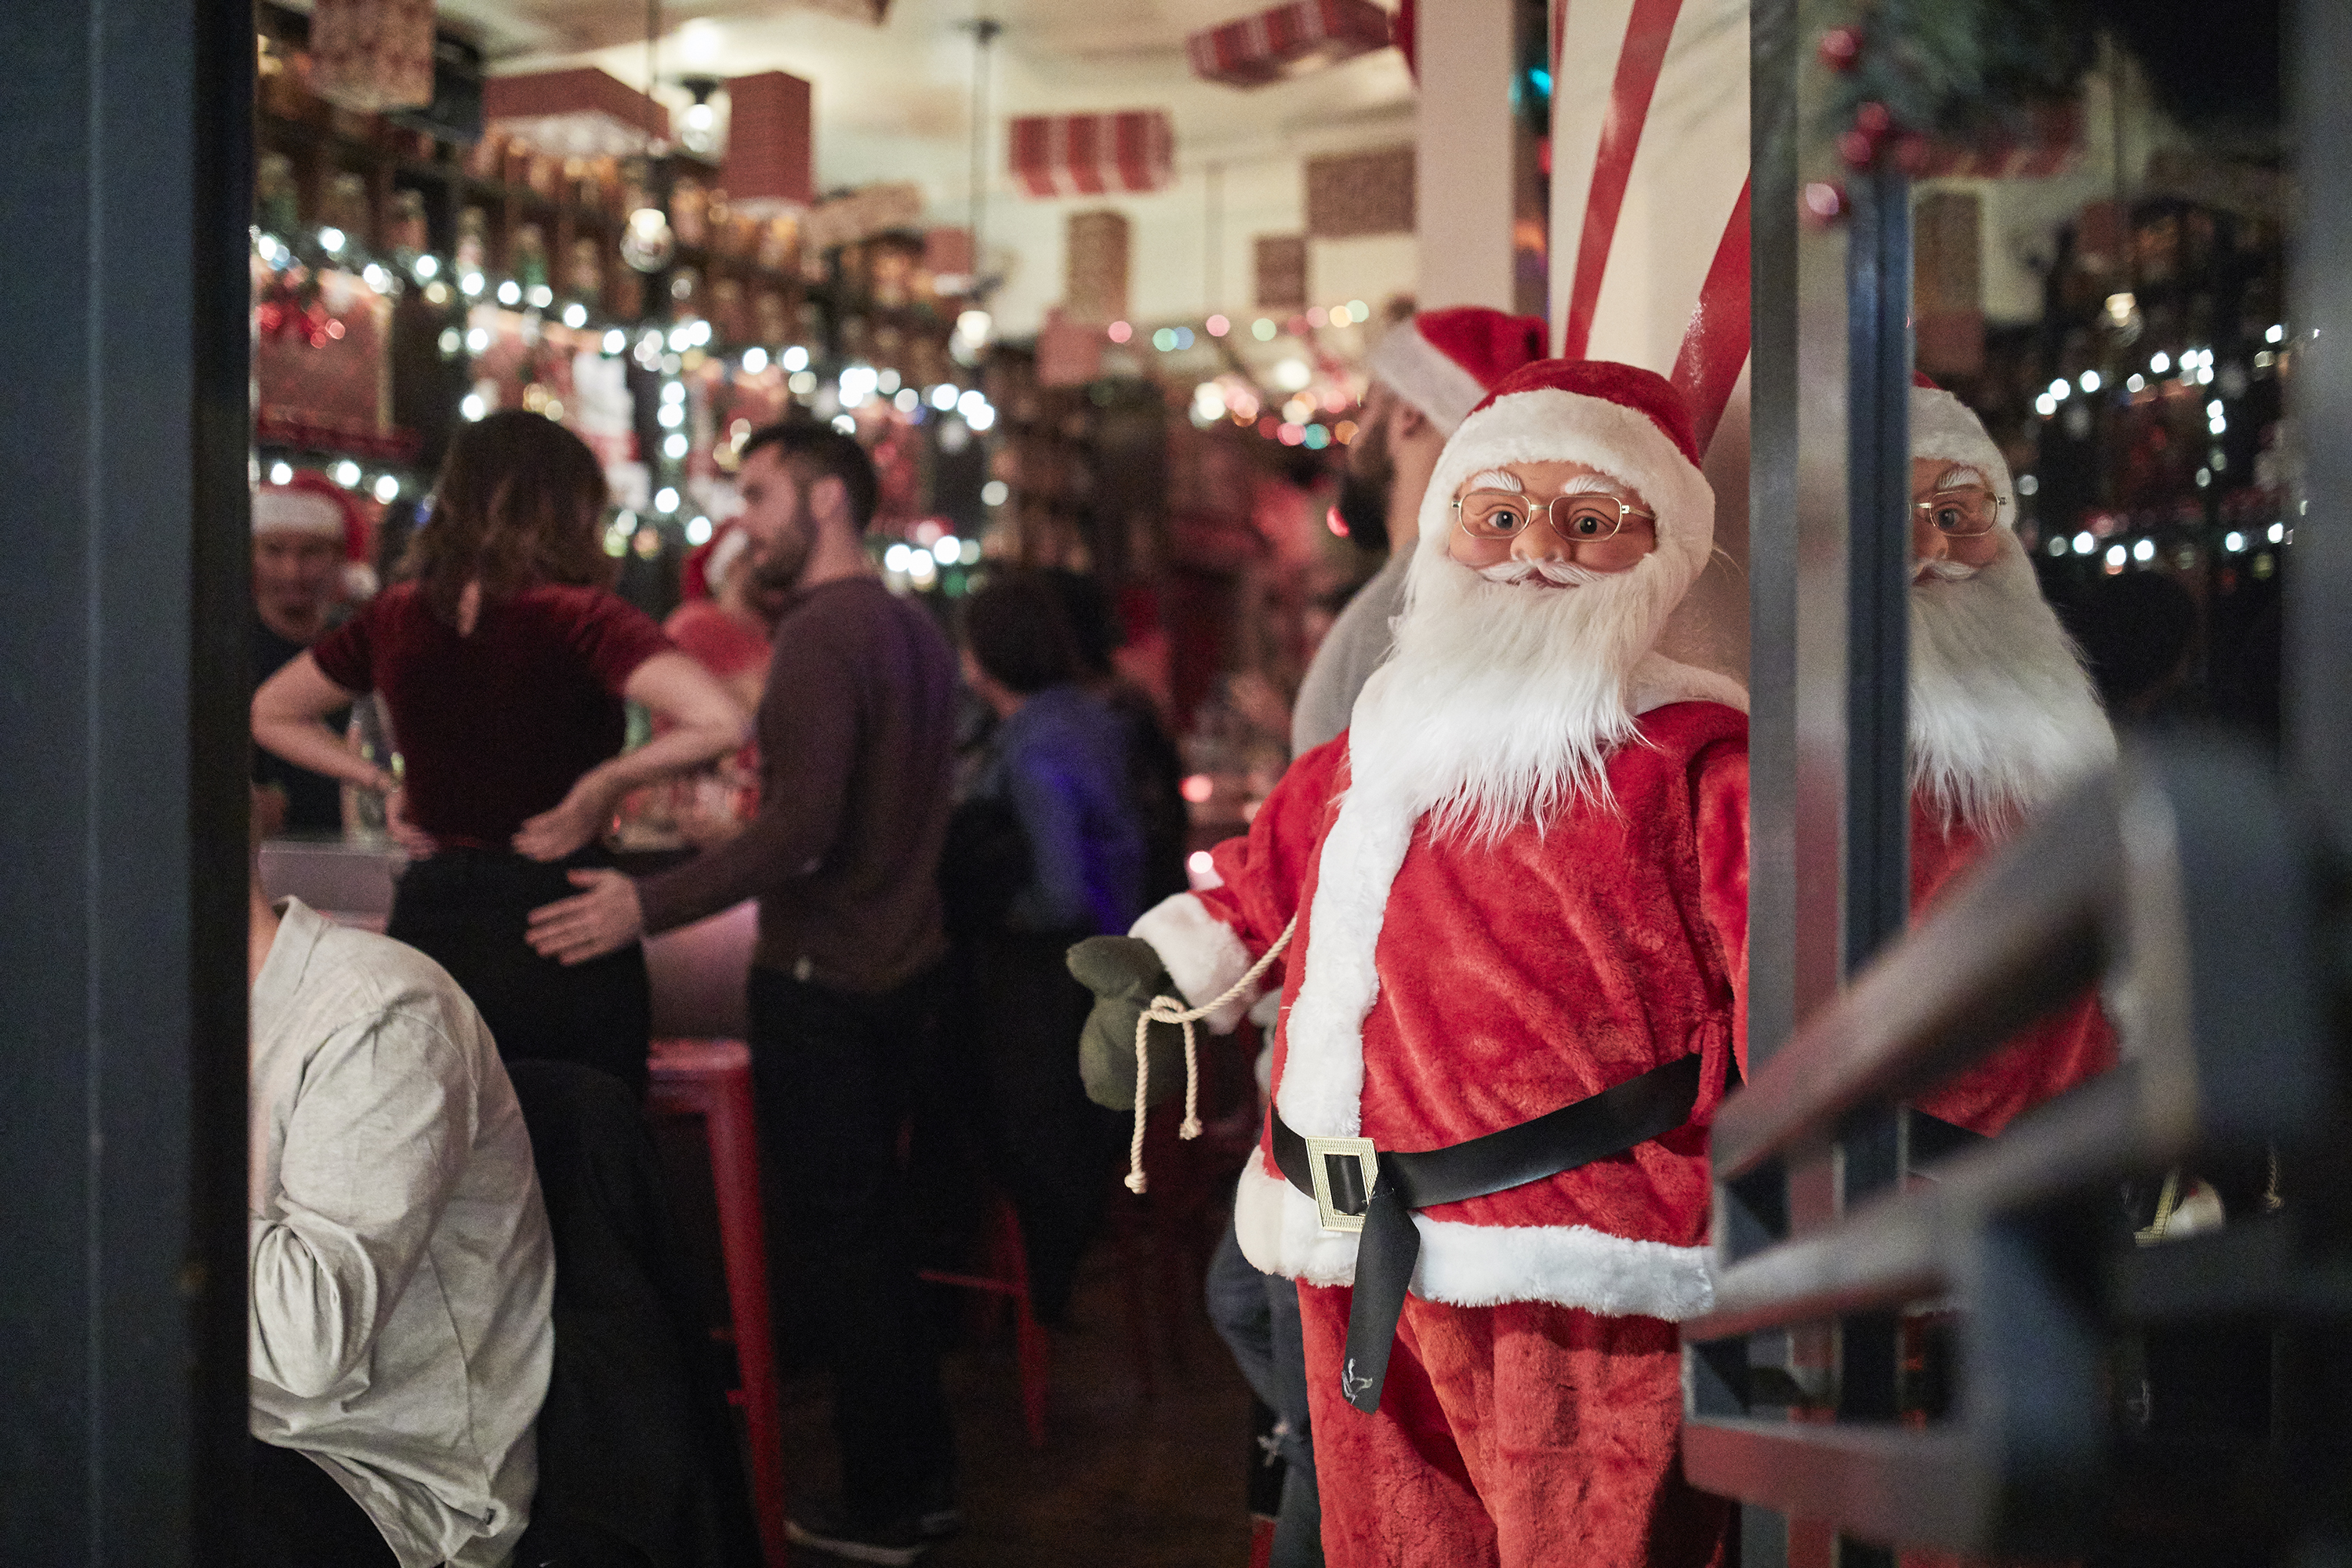 A Santa Claus figuring stands at the front of a bar, where people are standing in a space decorated for the Christmas holidays.